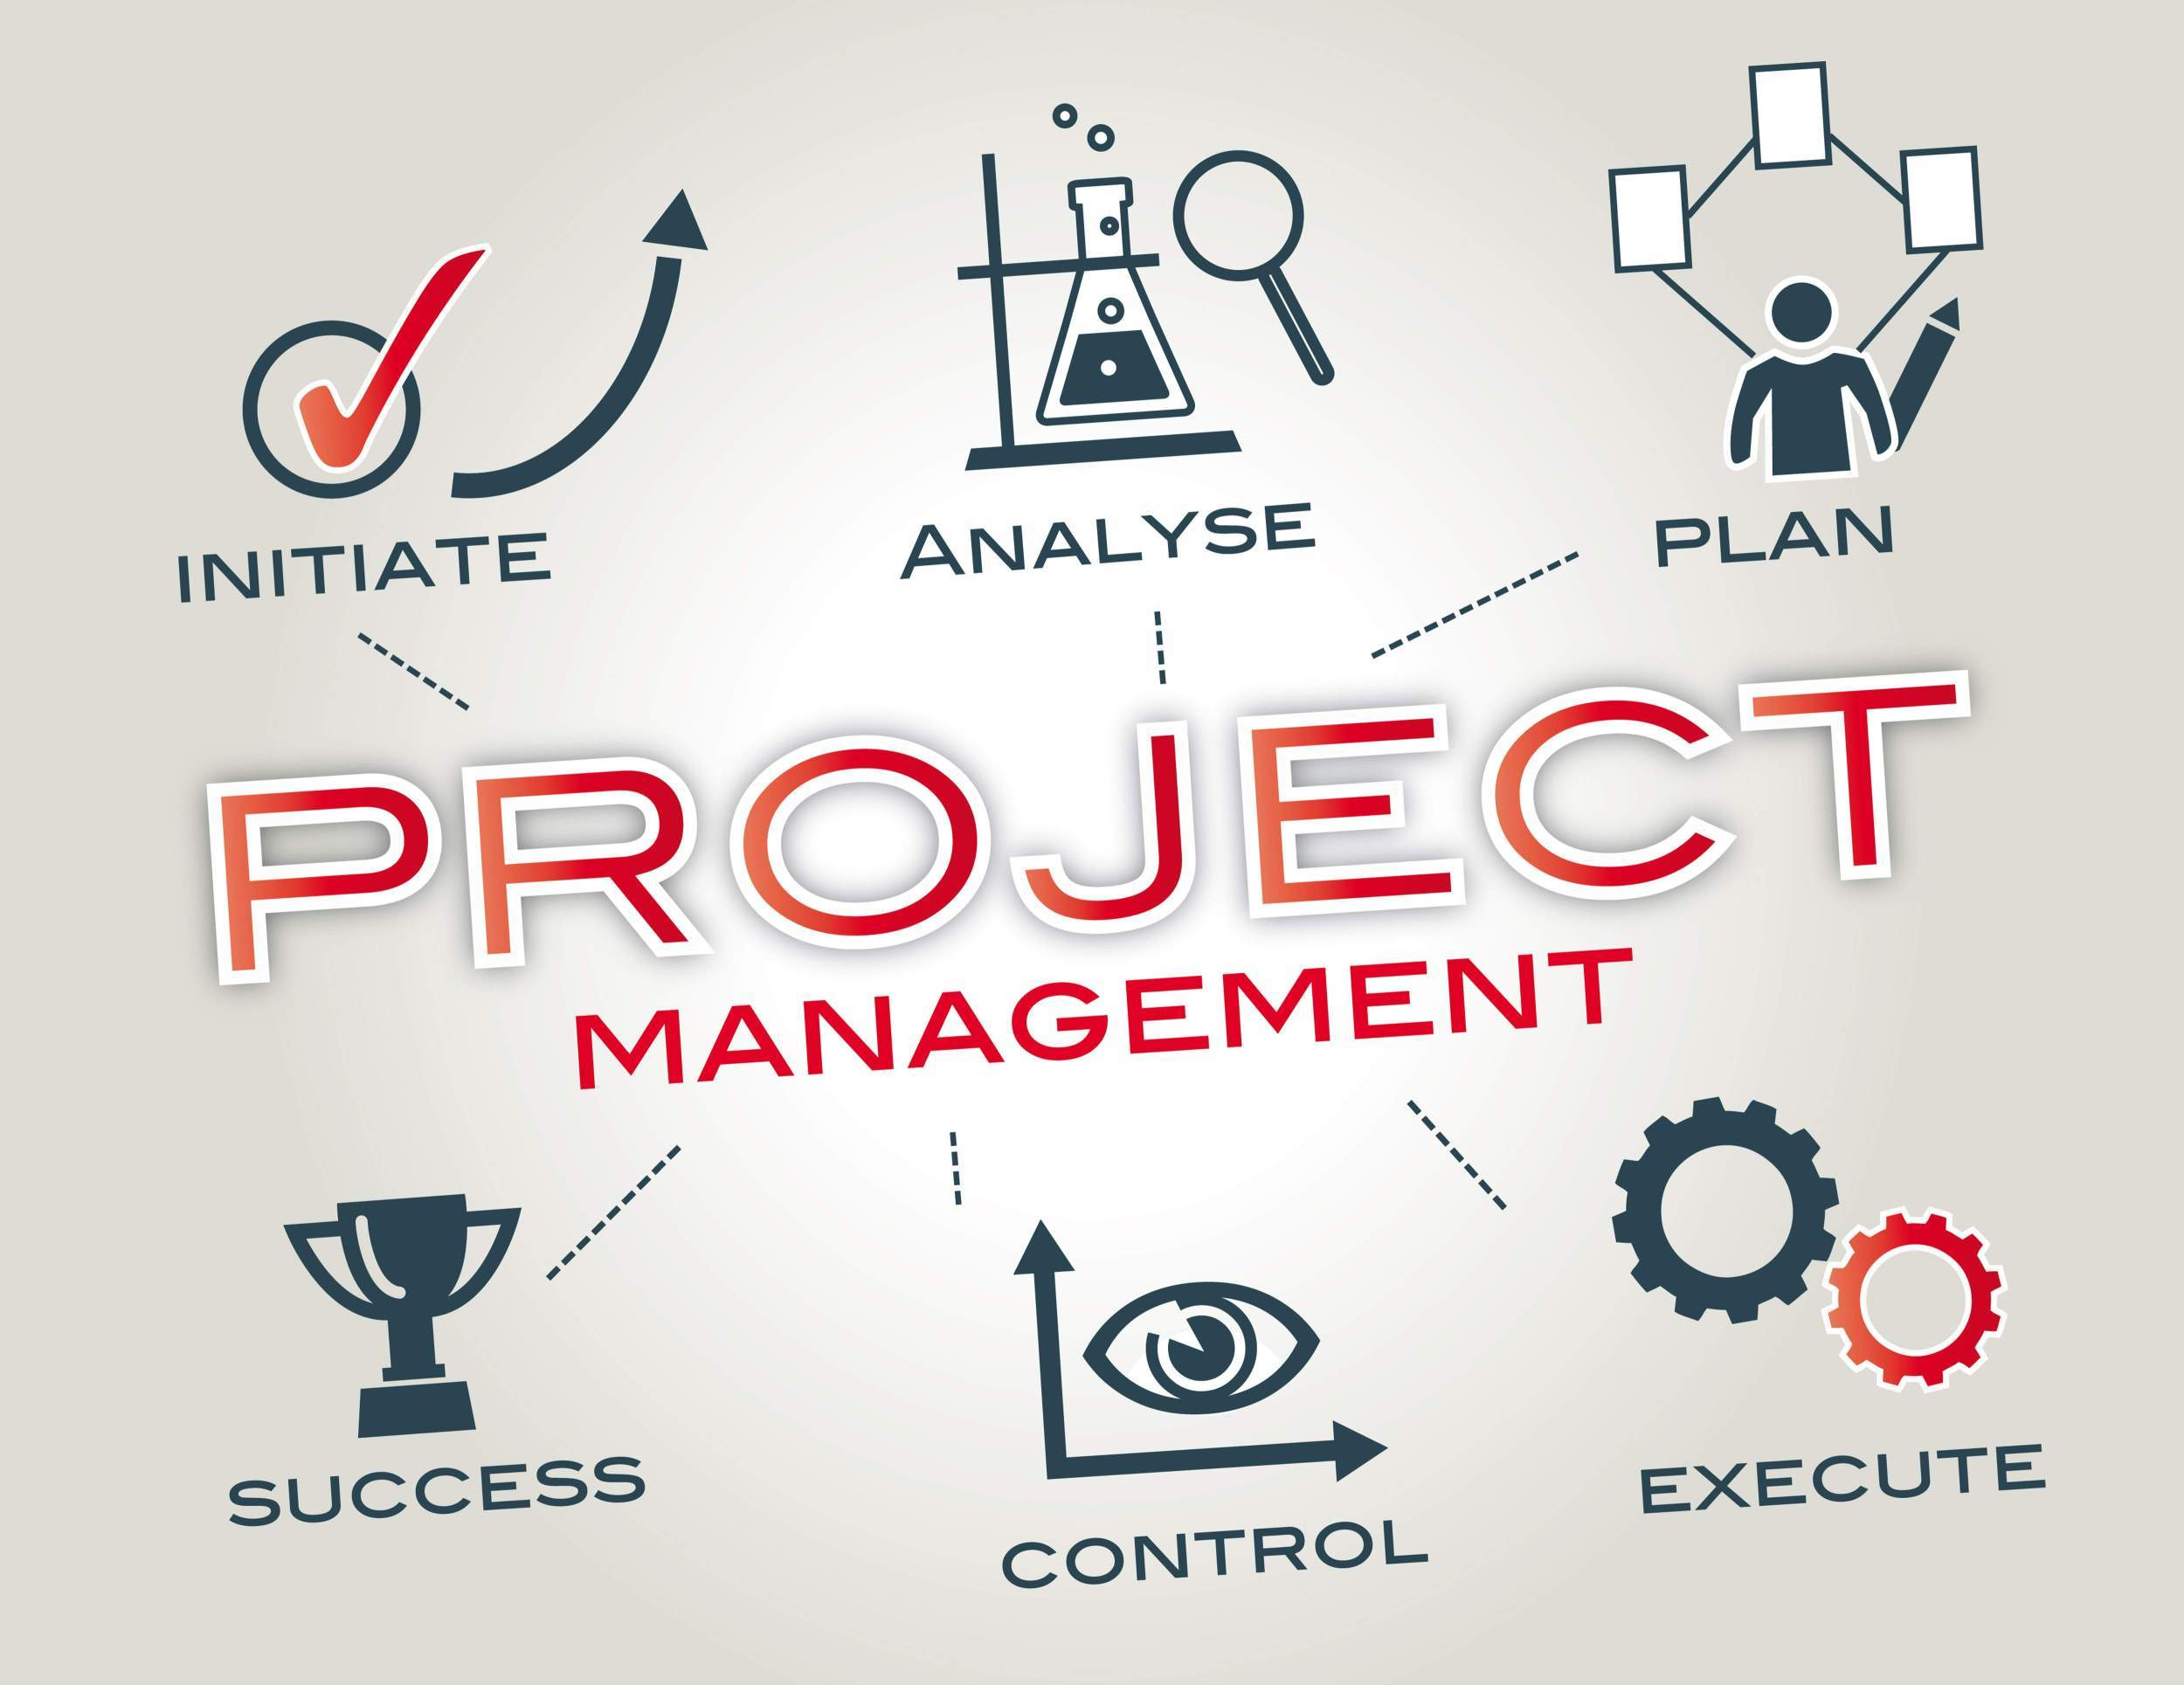 Importance of Agile Approach to Project Management